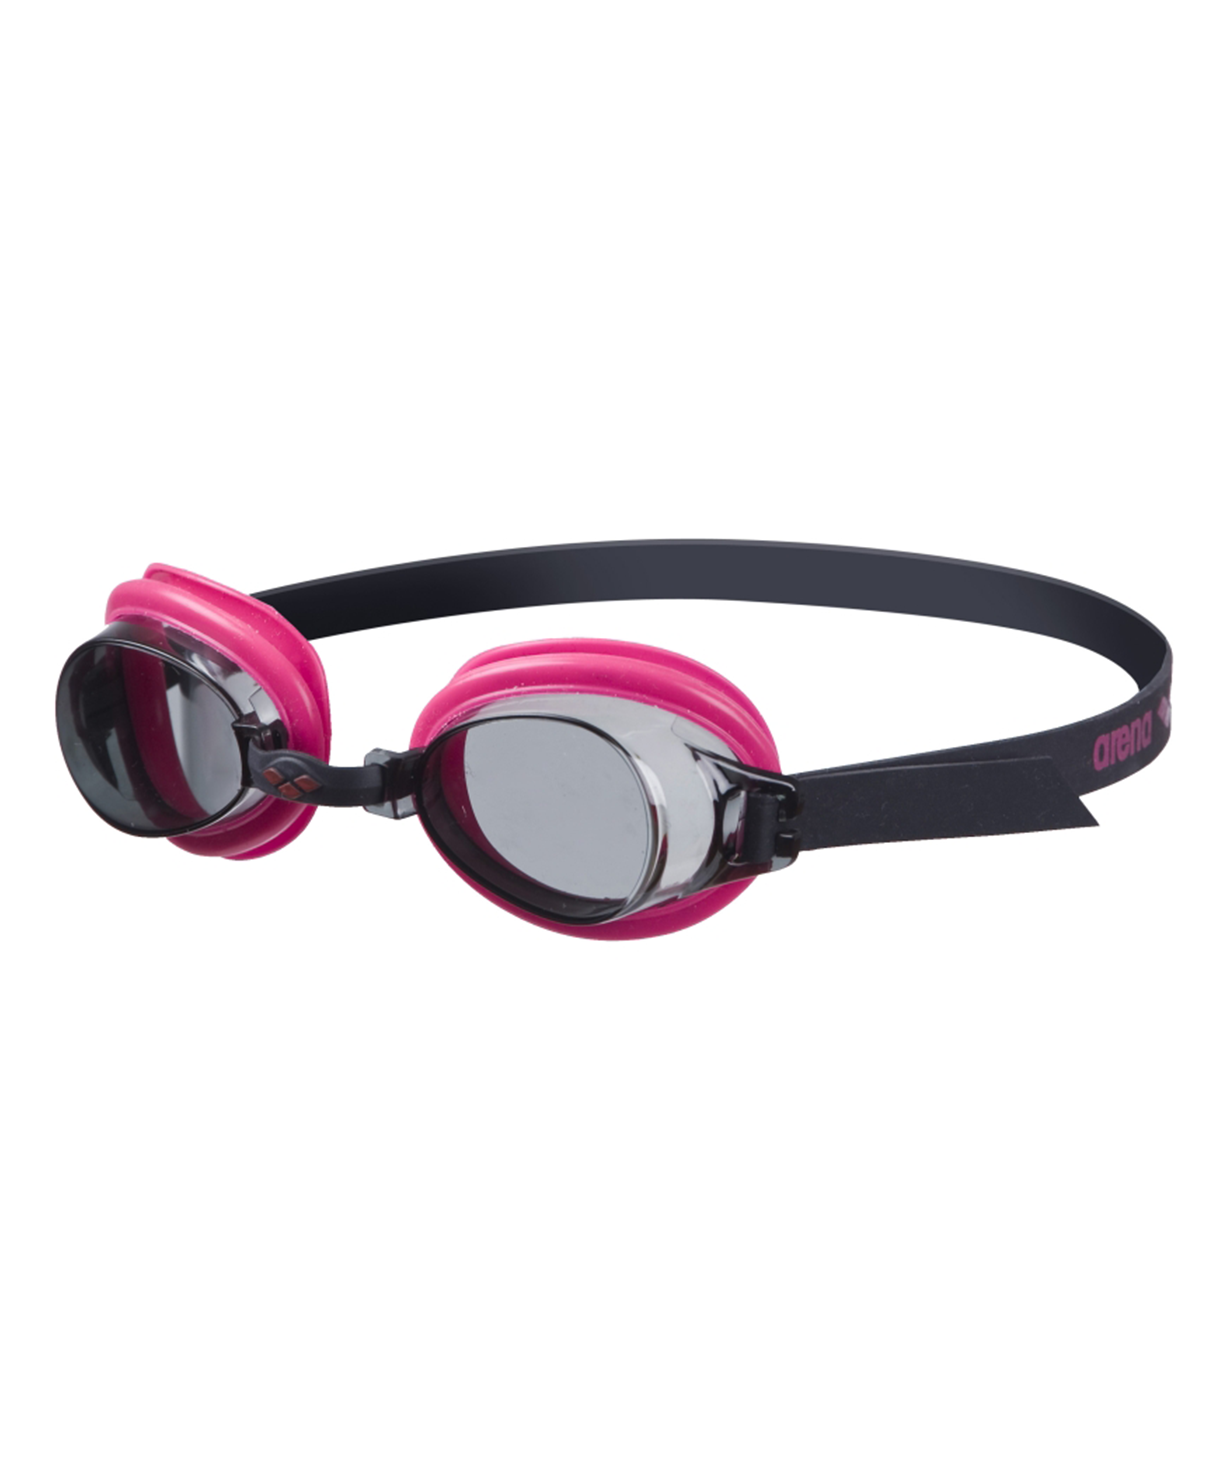 Очки Bubble 3 Junior Black/Smoke/Fuchsia (92395 95)